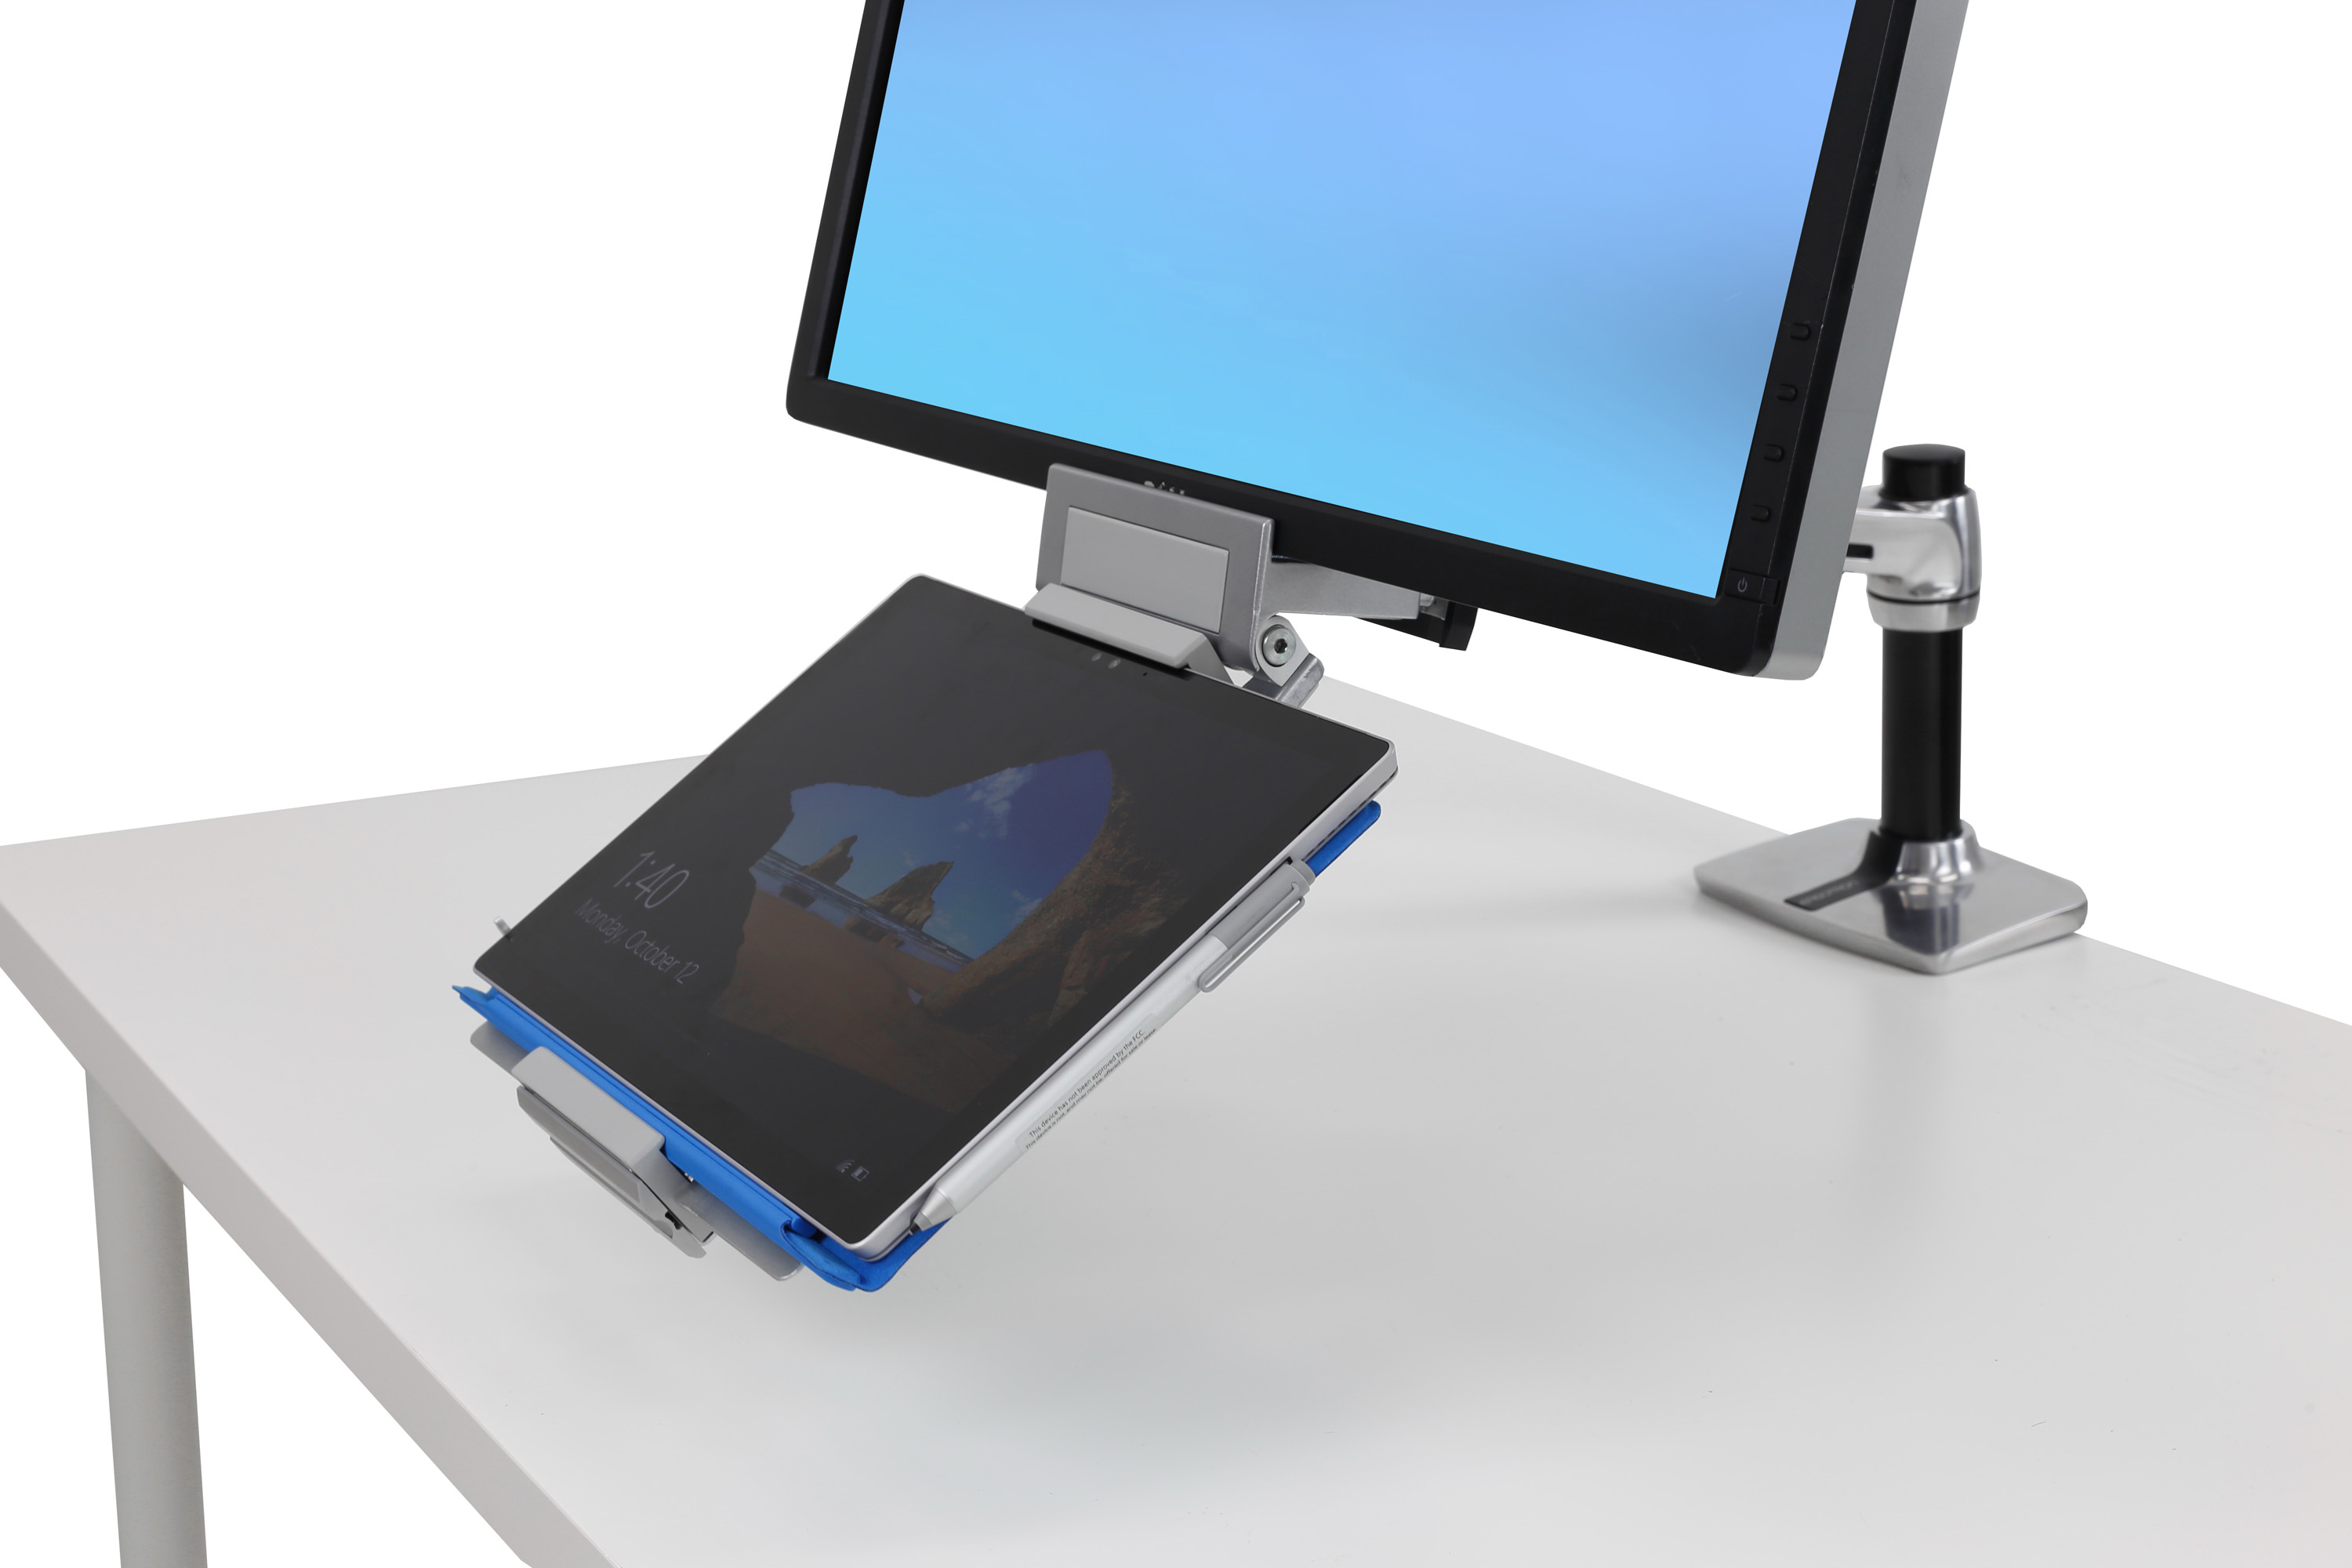 motion arm loctek products stand mounts laptop for in spring gas dual desk monitor full